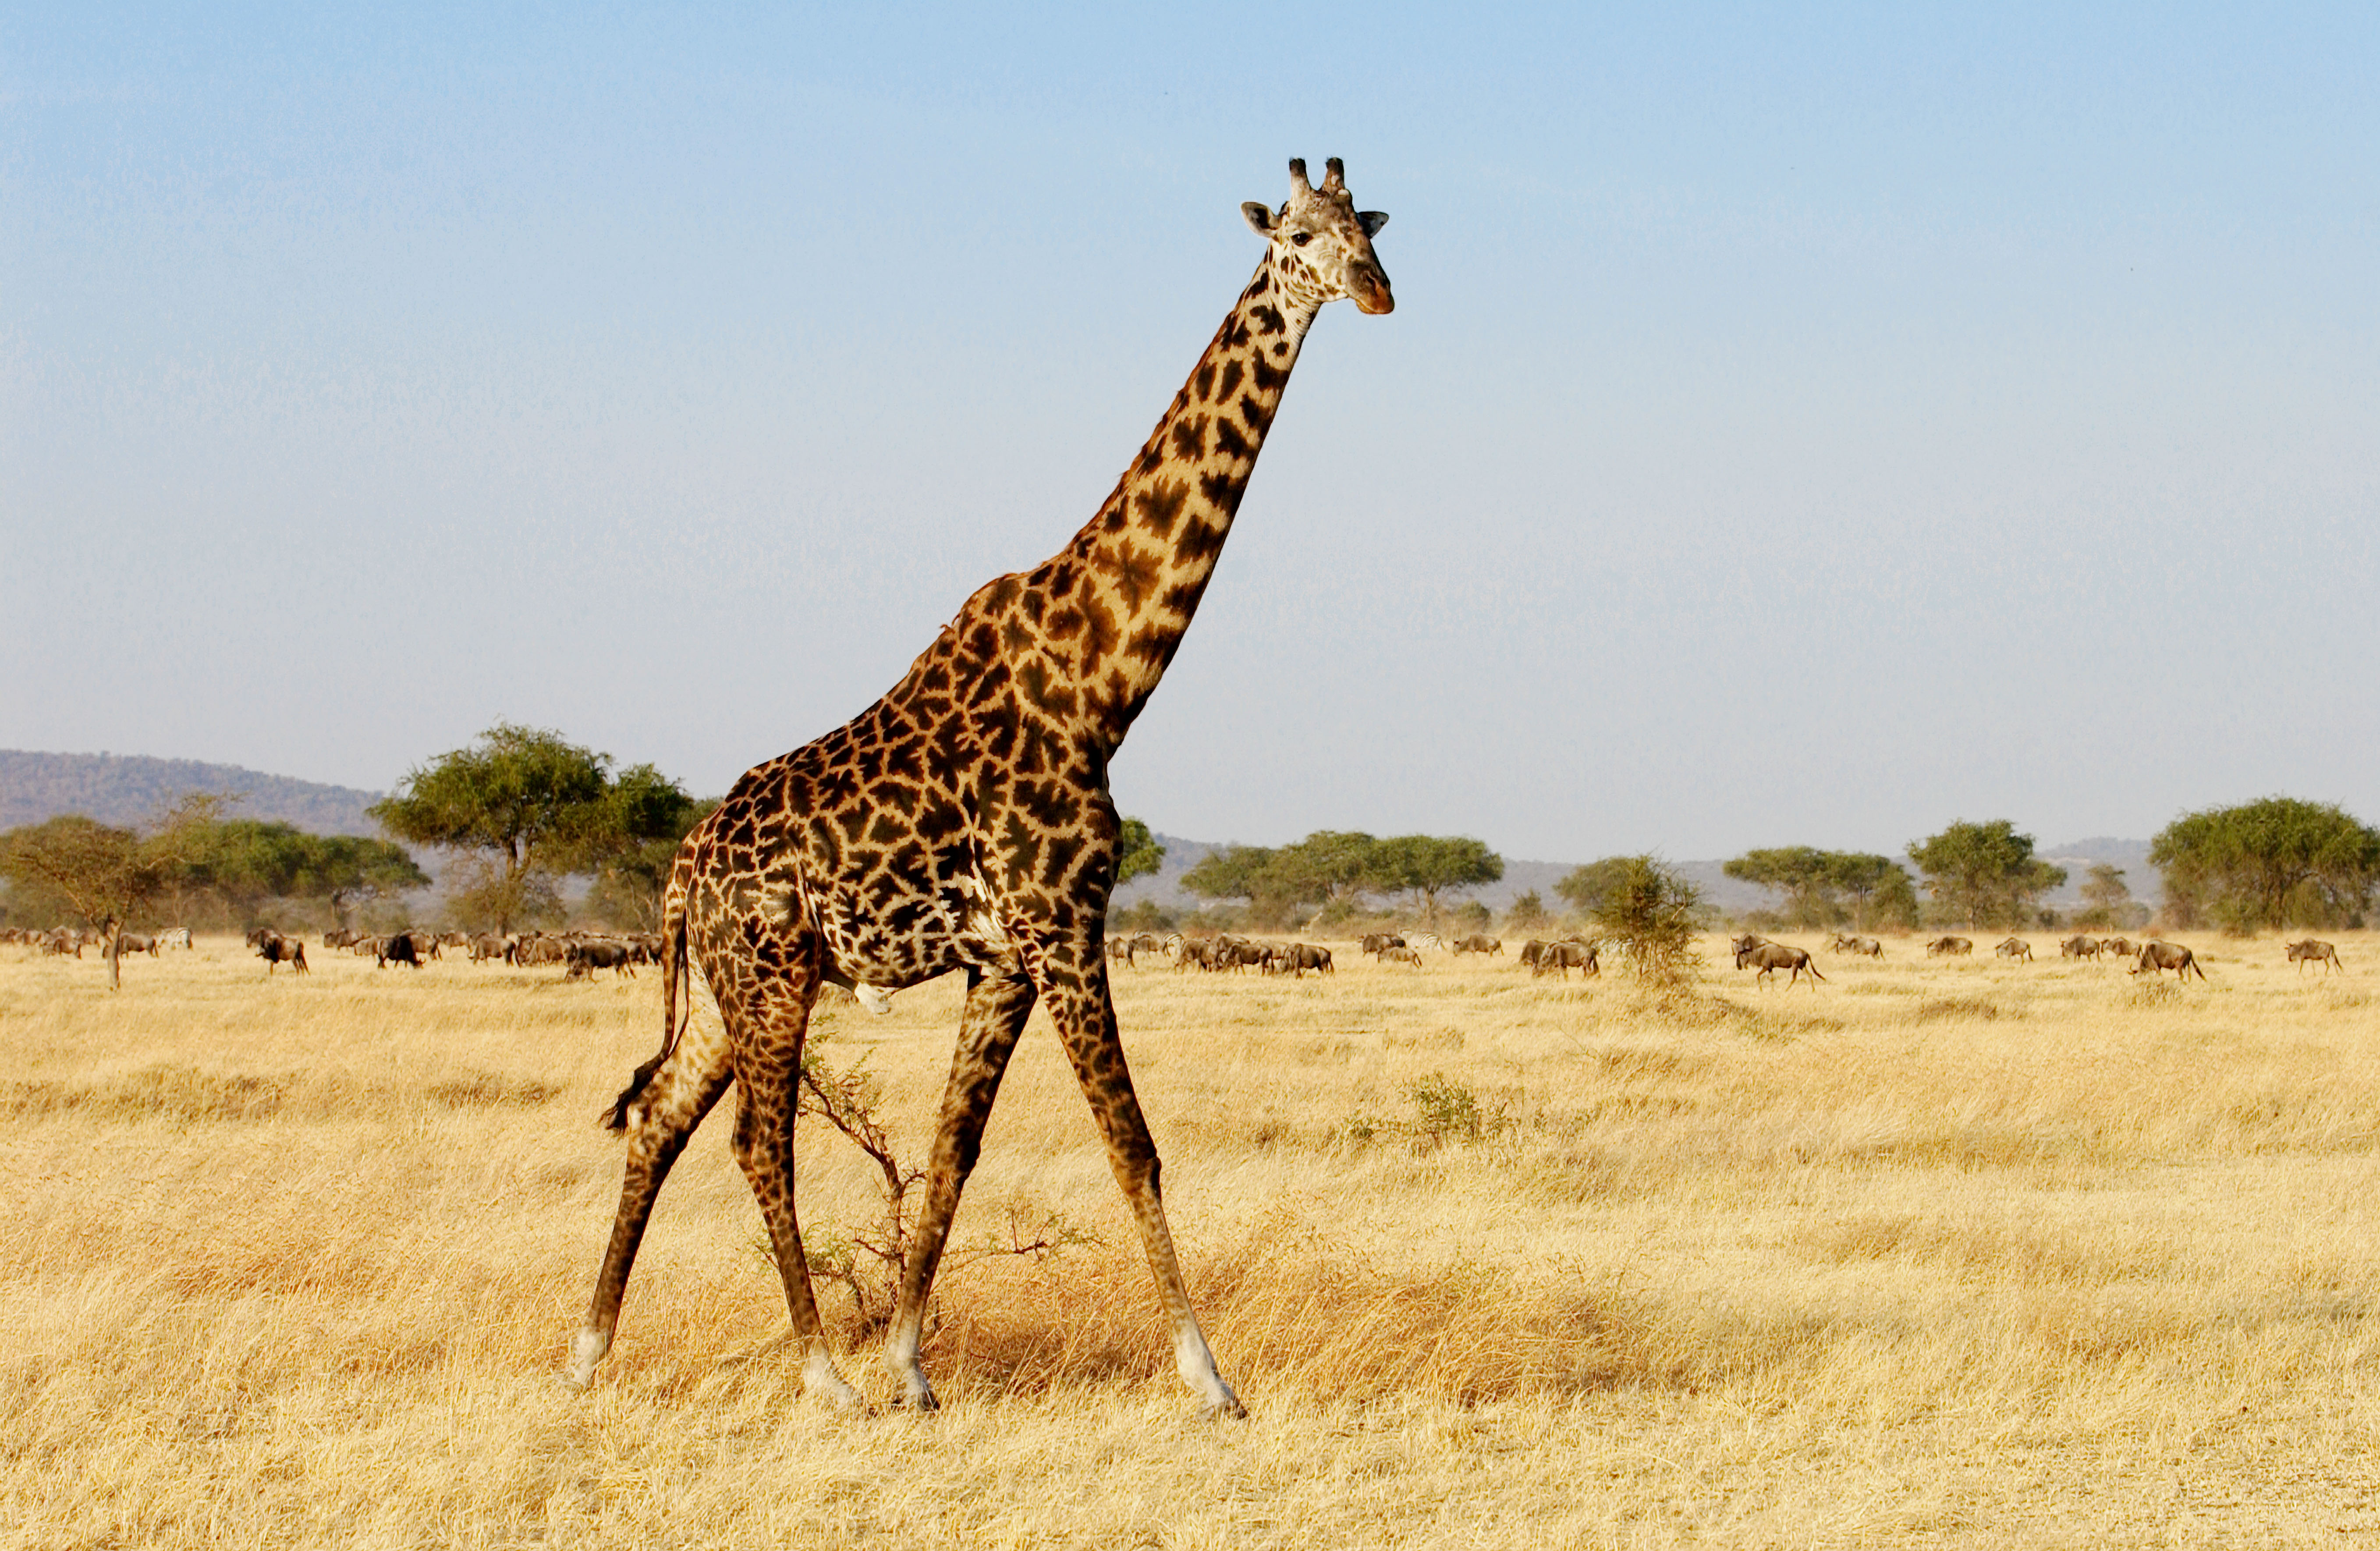 We just found out some surprising news about Giraffes, and they're way more diverse than we thought